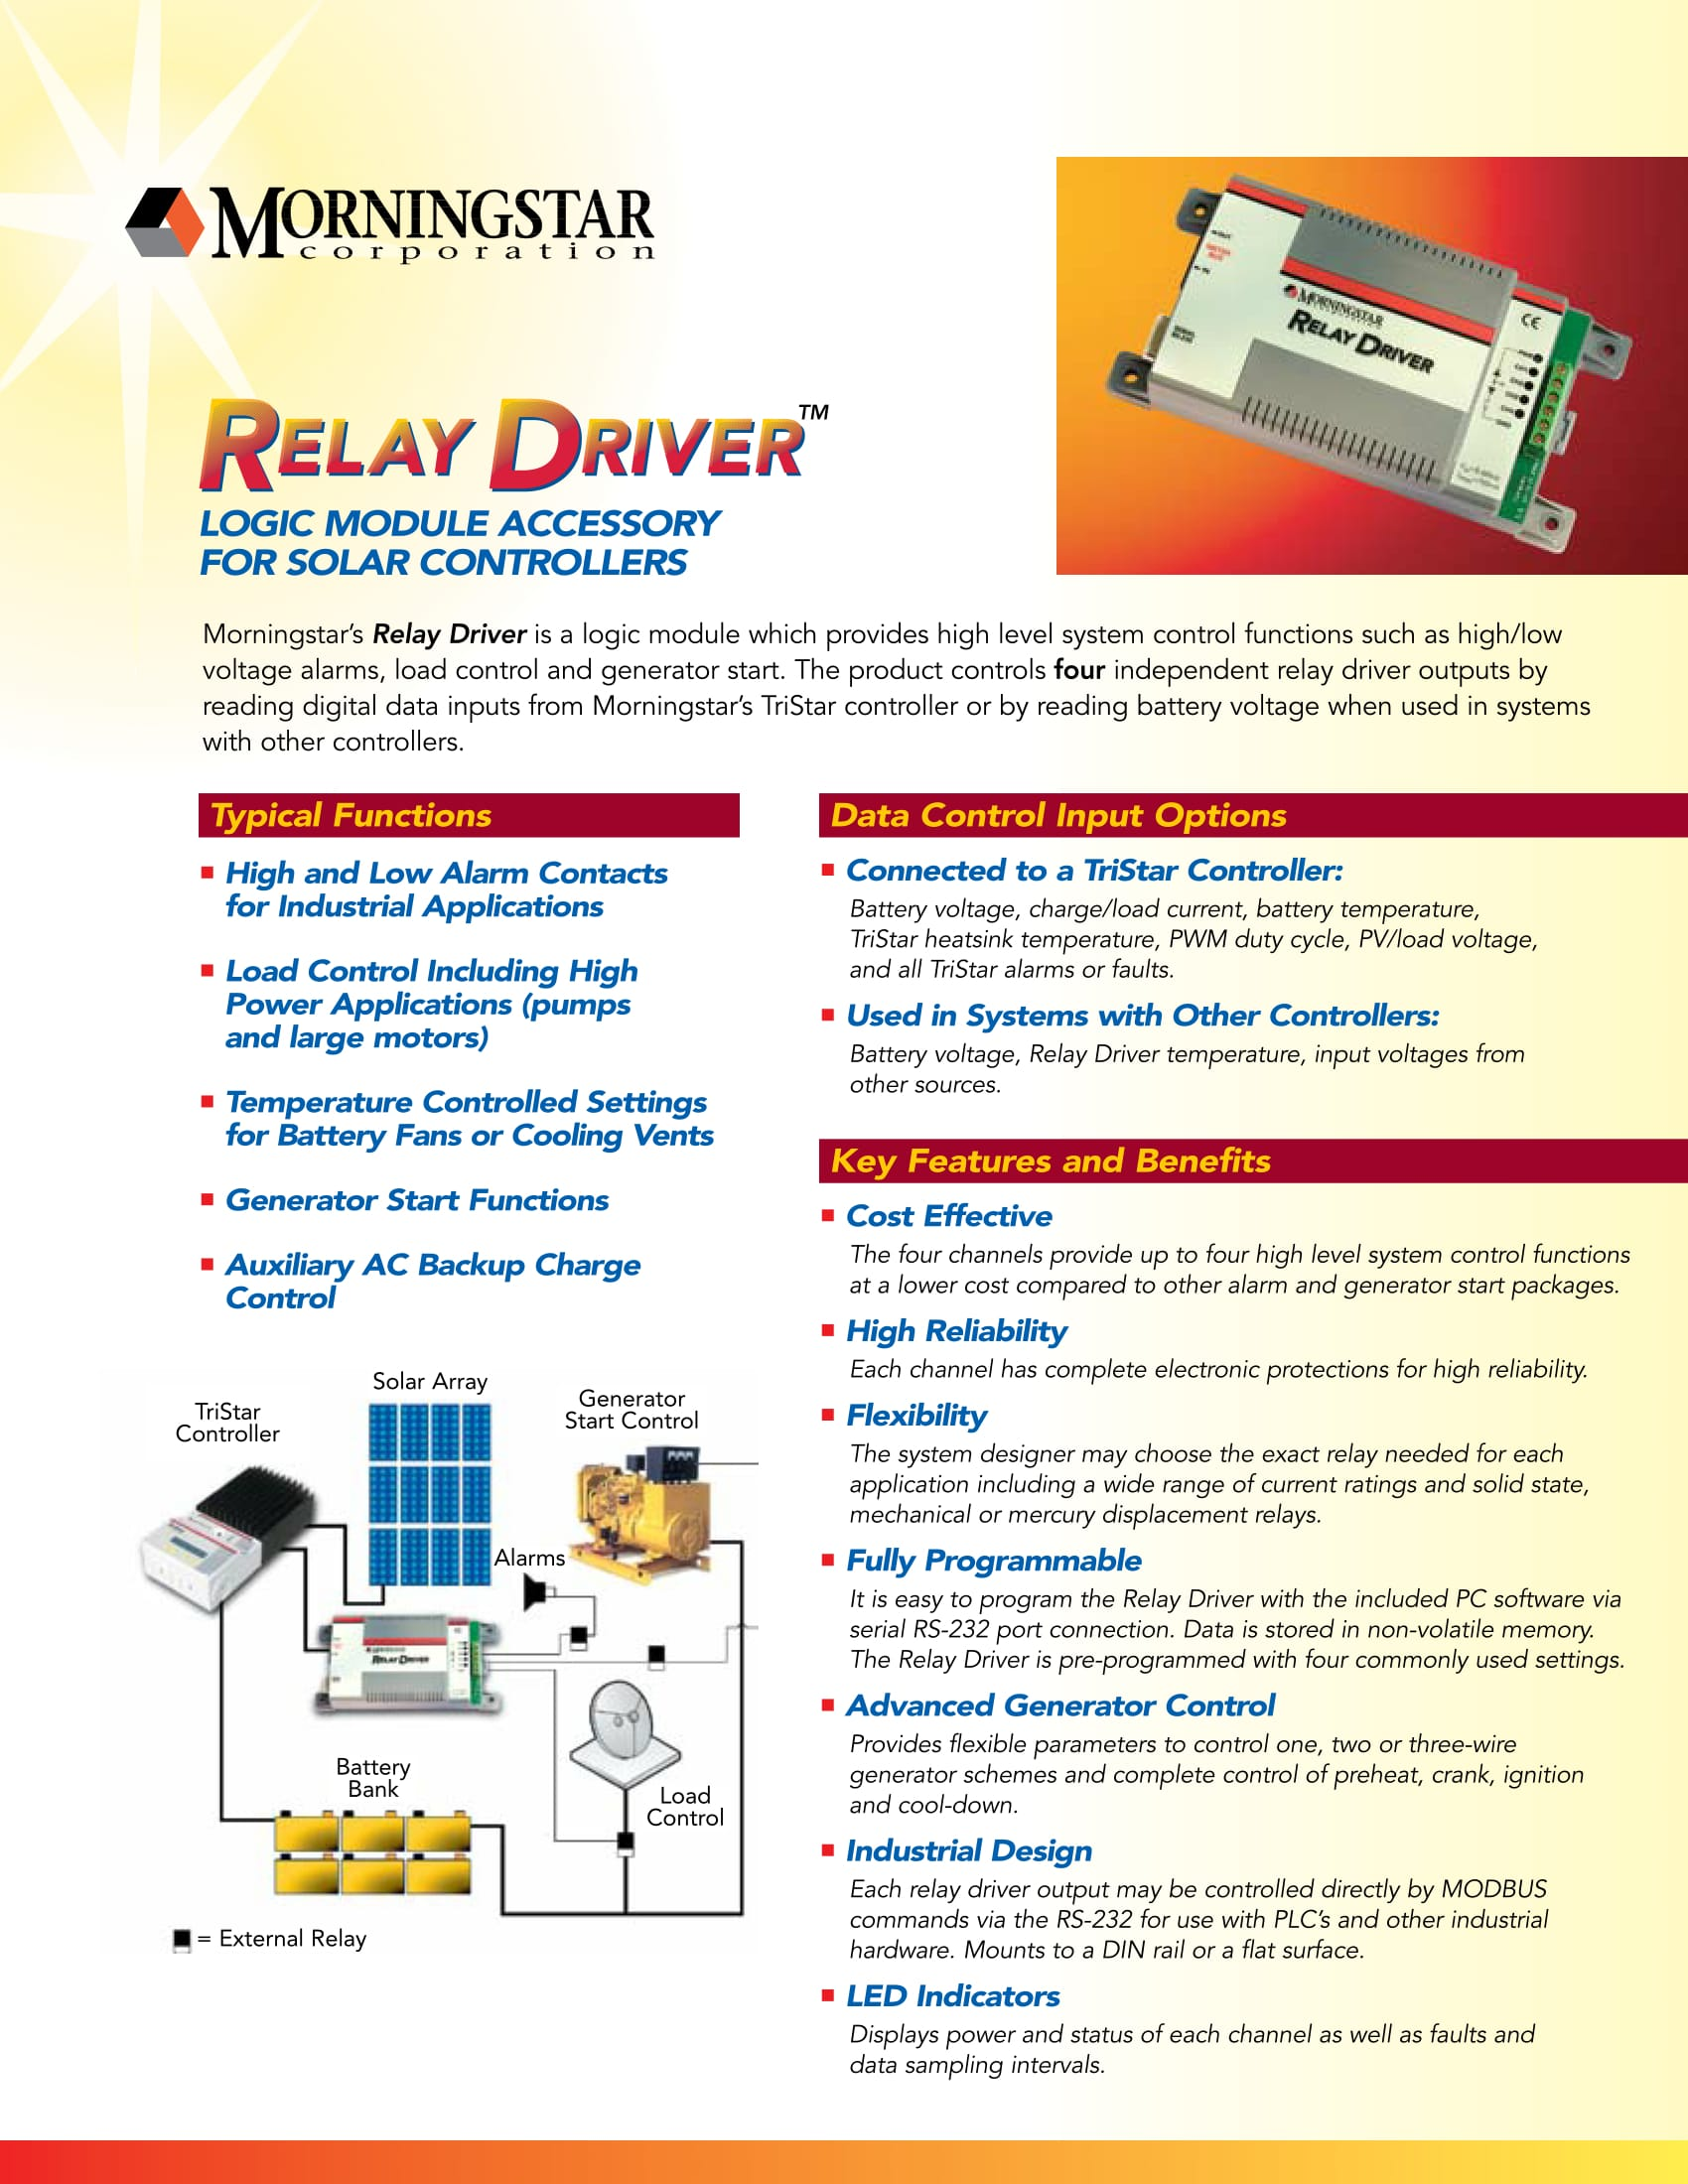 Morningstar Relay Driver For Tri Star Rd 1 Cost Of Electromagnetic Effective High Reliability Flexibility Fully Programmable Advanced Generator Control Industrial Design Led Indicators